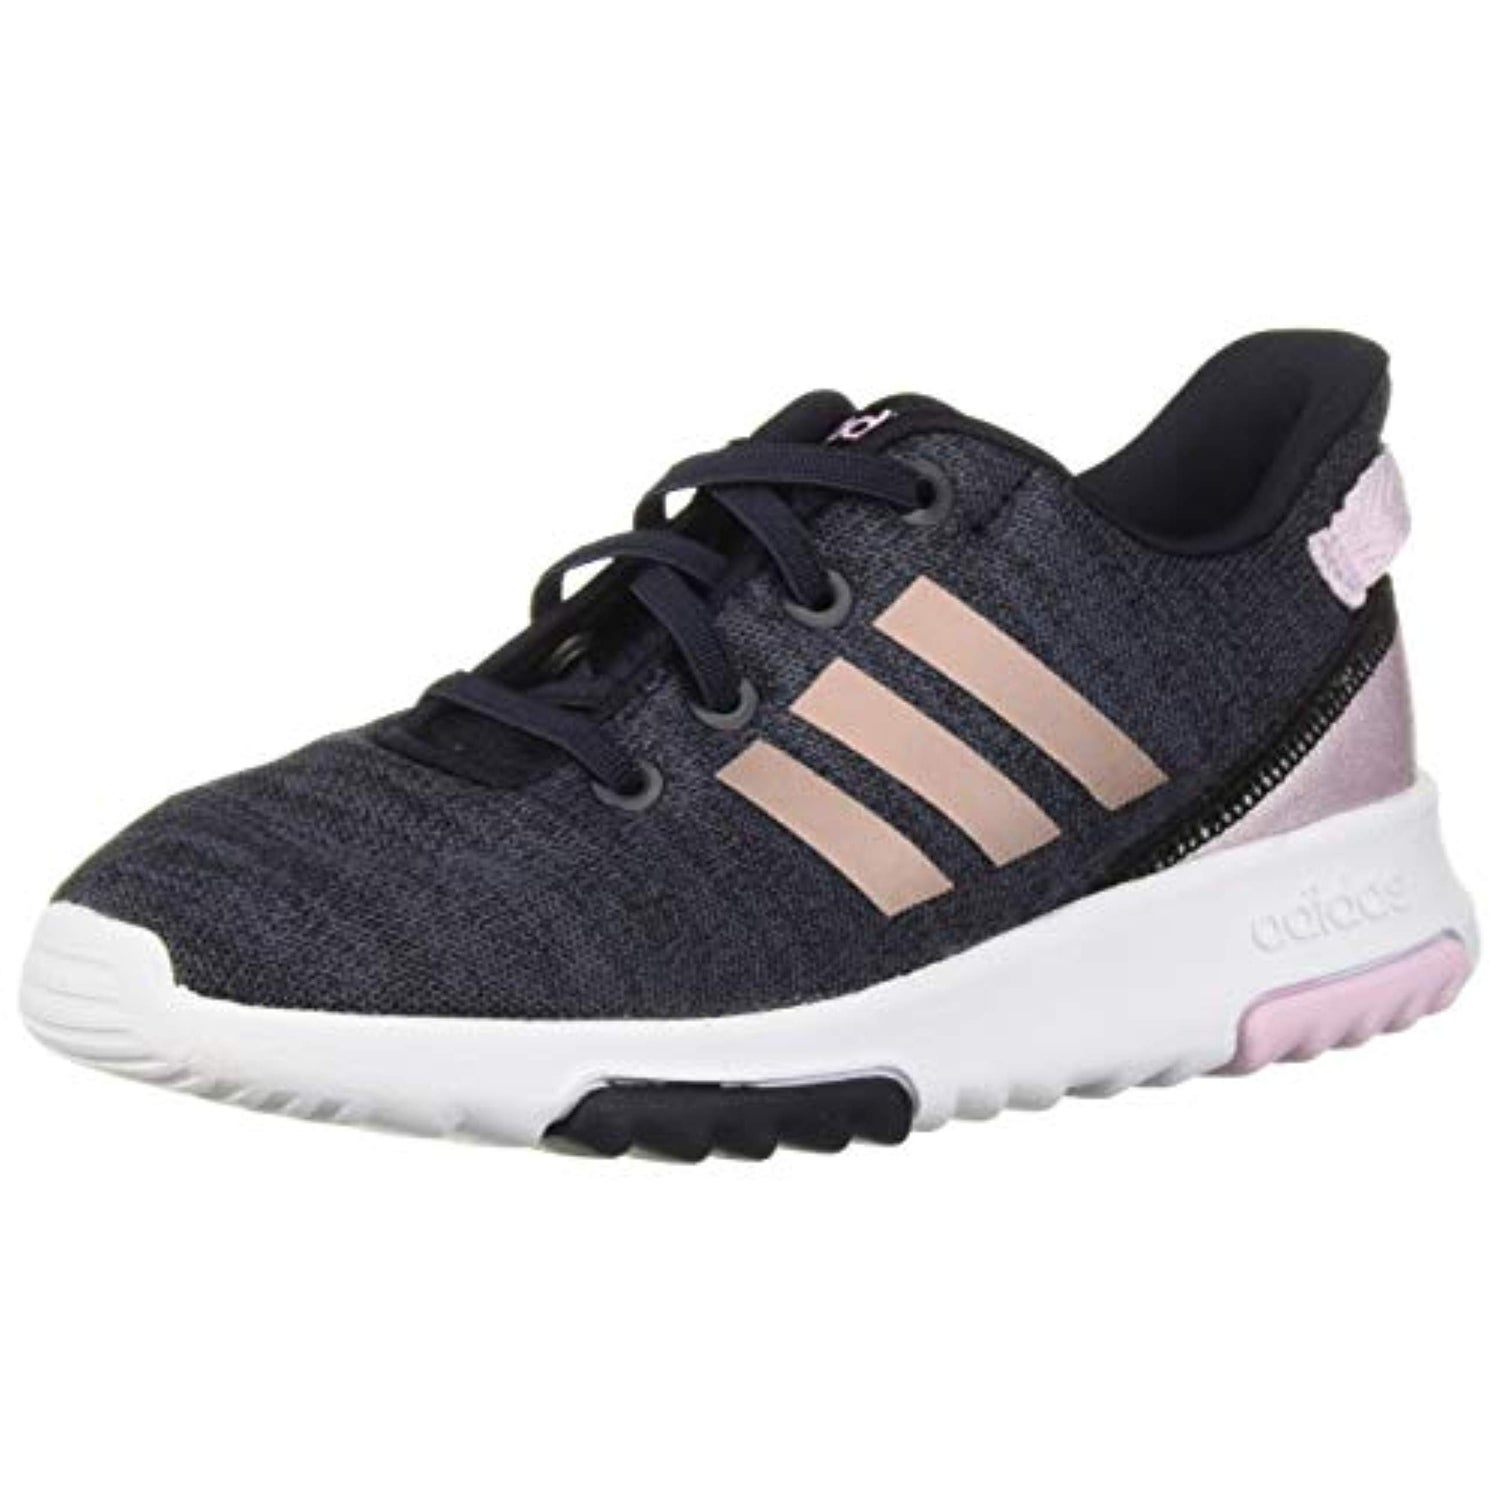 Details about Kids adidas Racer Infants Trainers Runners Elasticated Laces Lightweight New